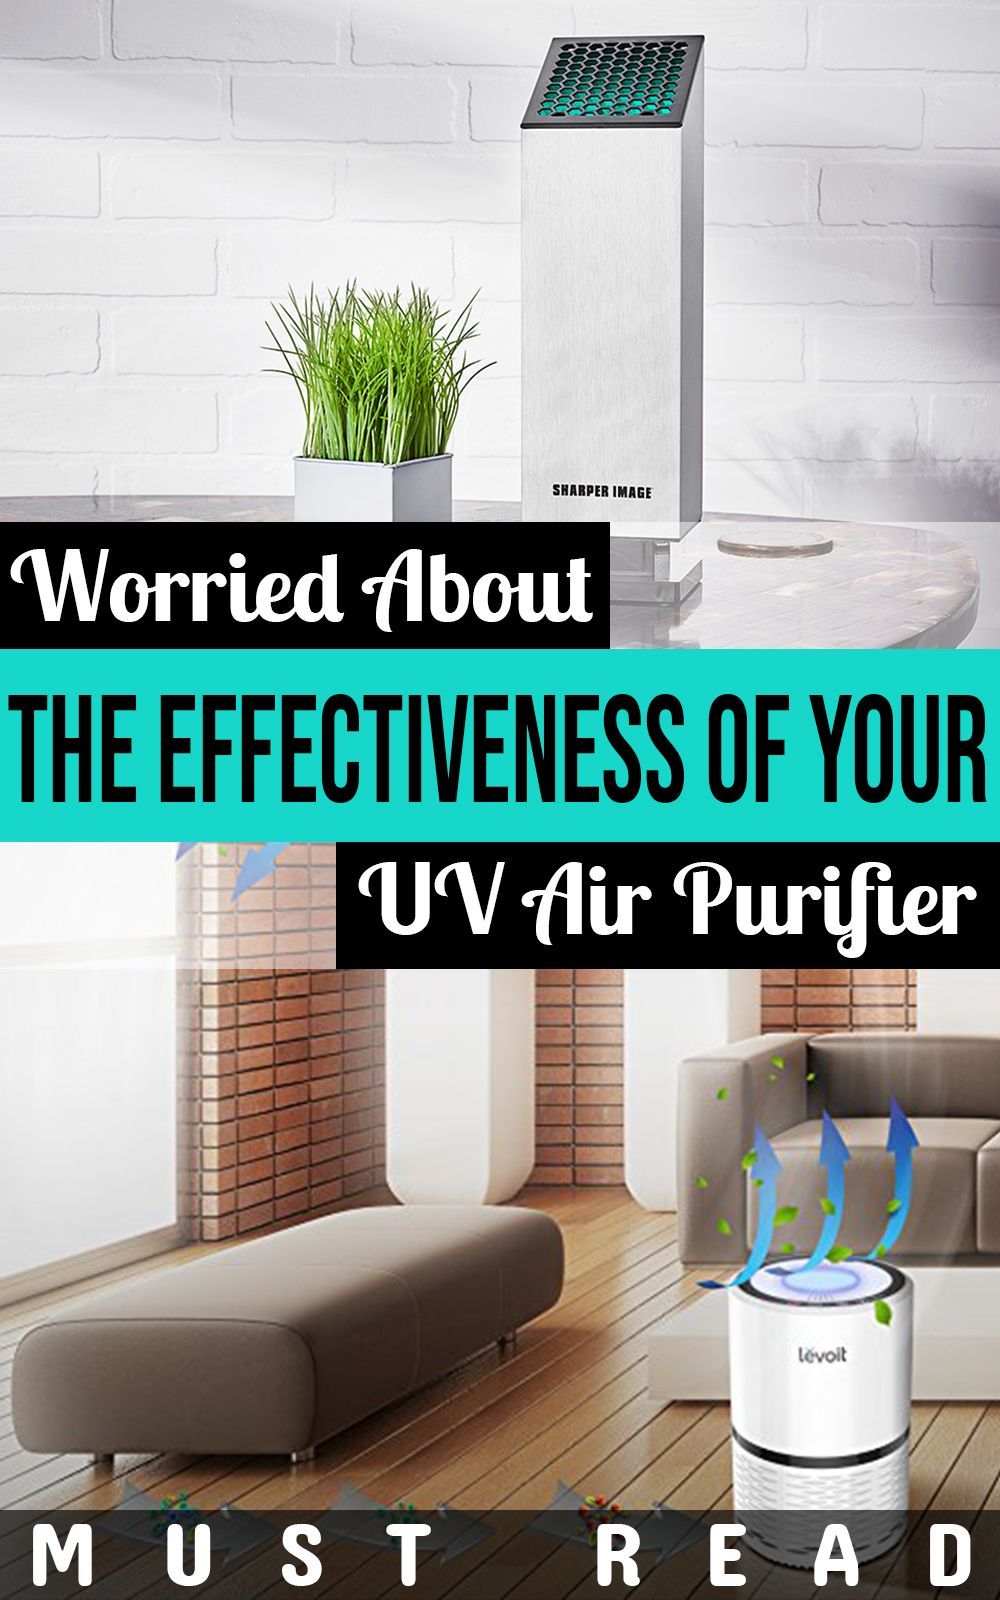 Worried About the Effectiveness of Your UV Air Purifier